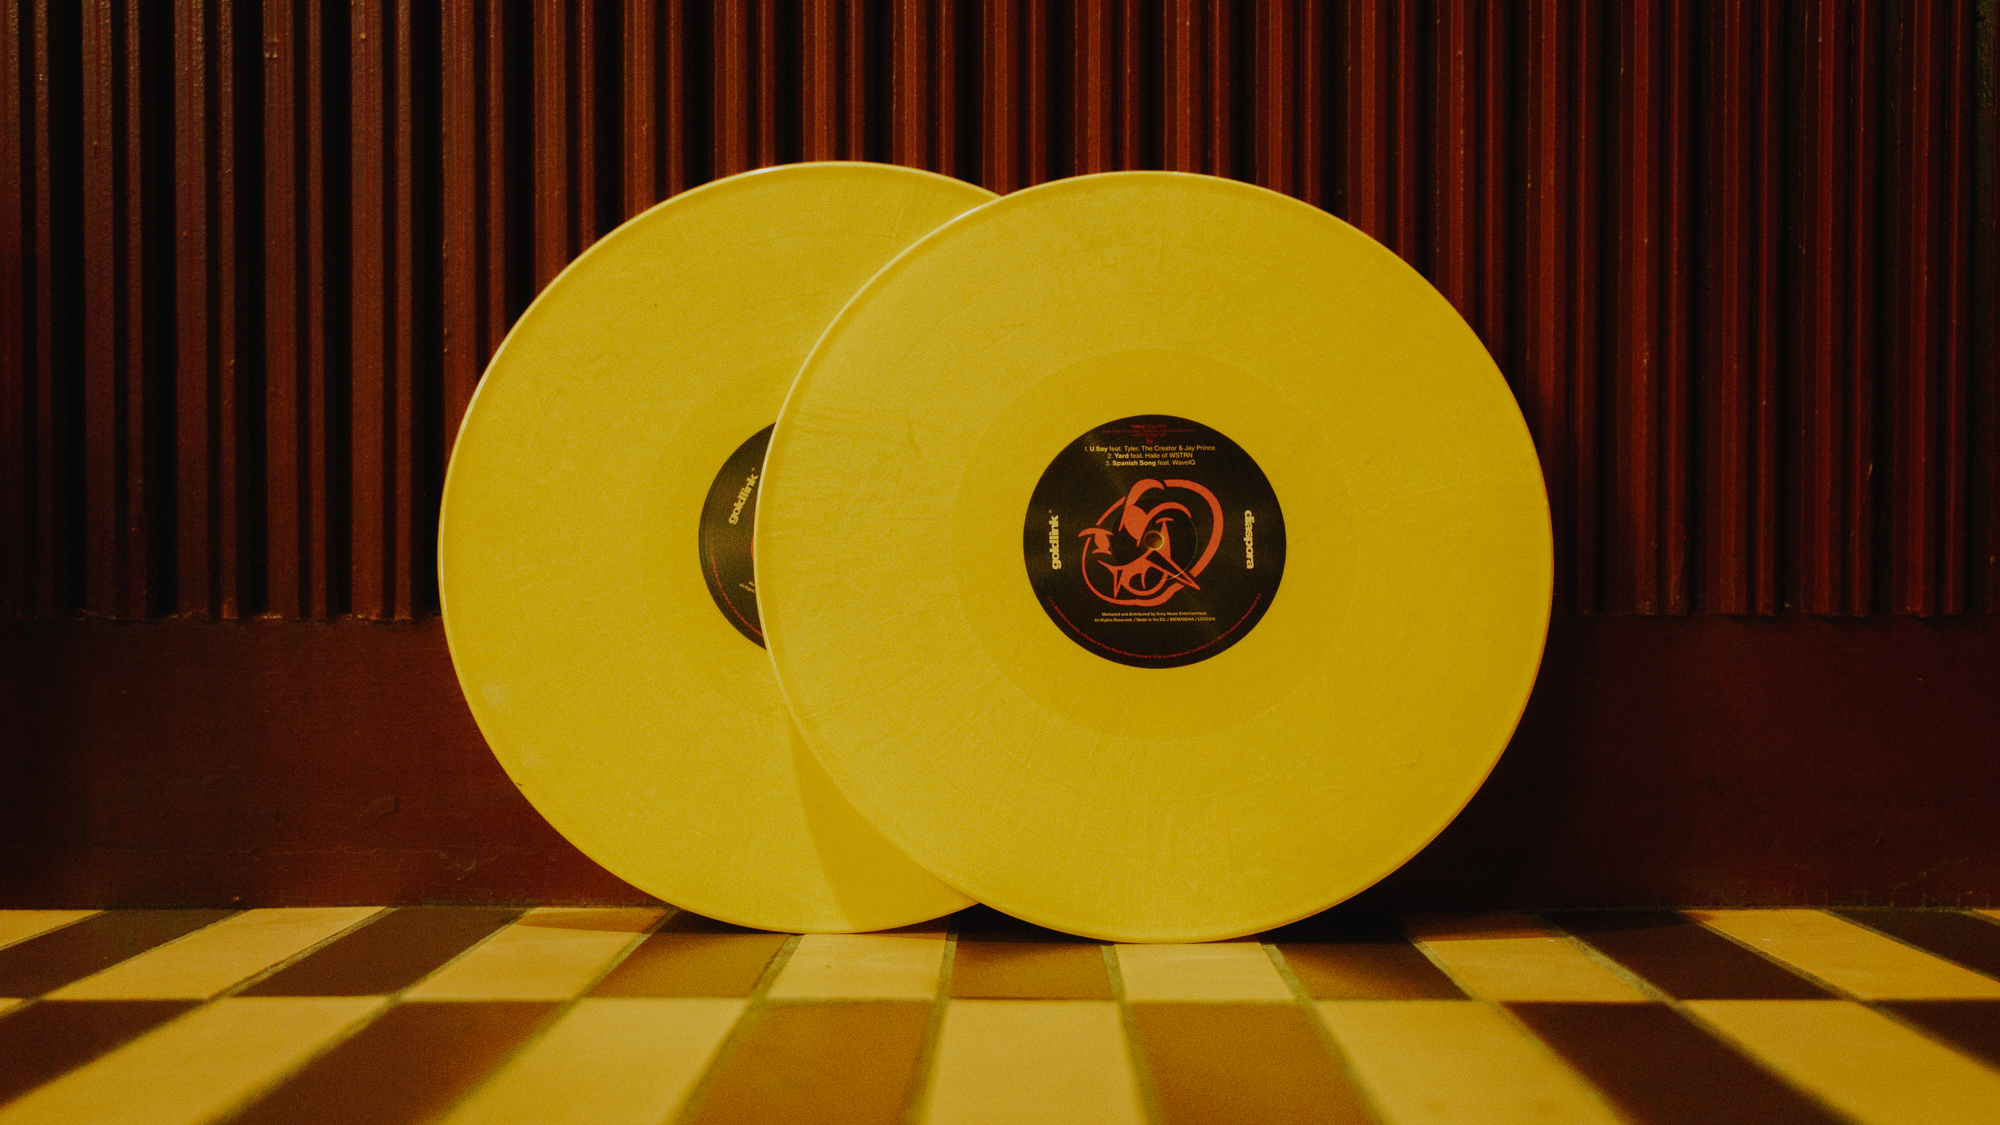 Diaspora - Yellow 2xLP